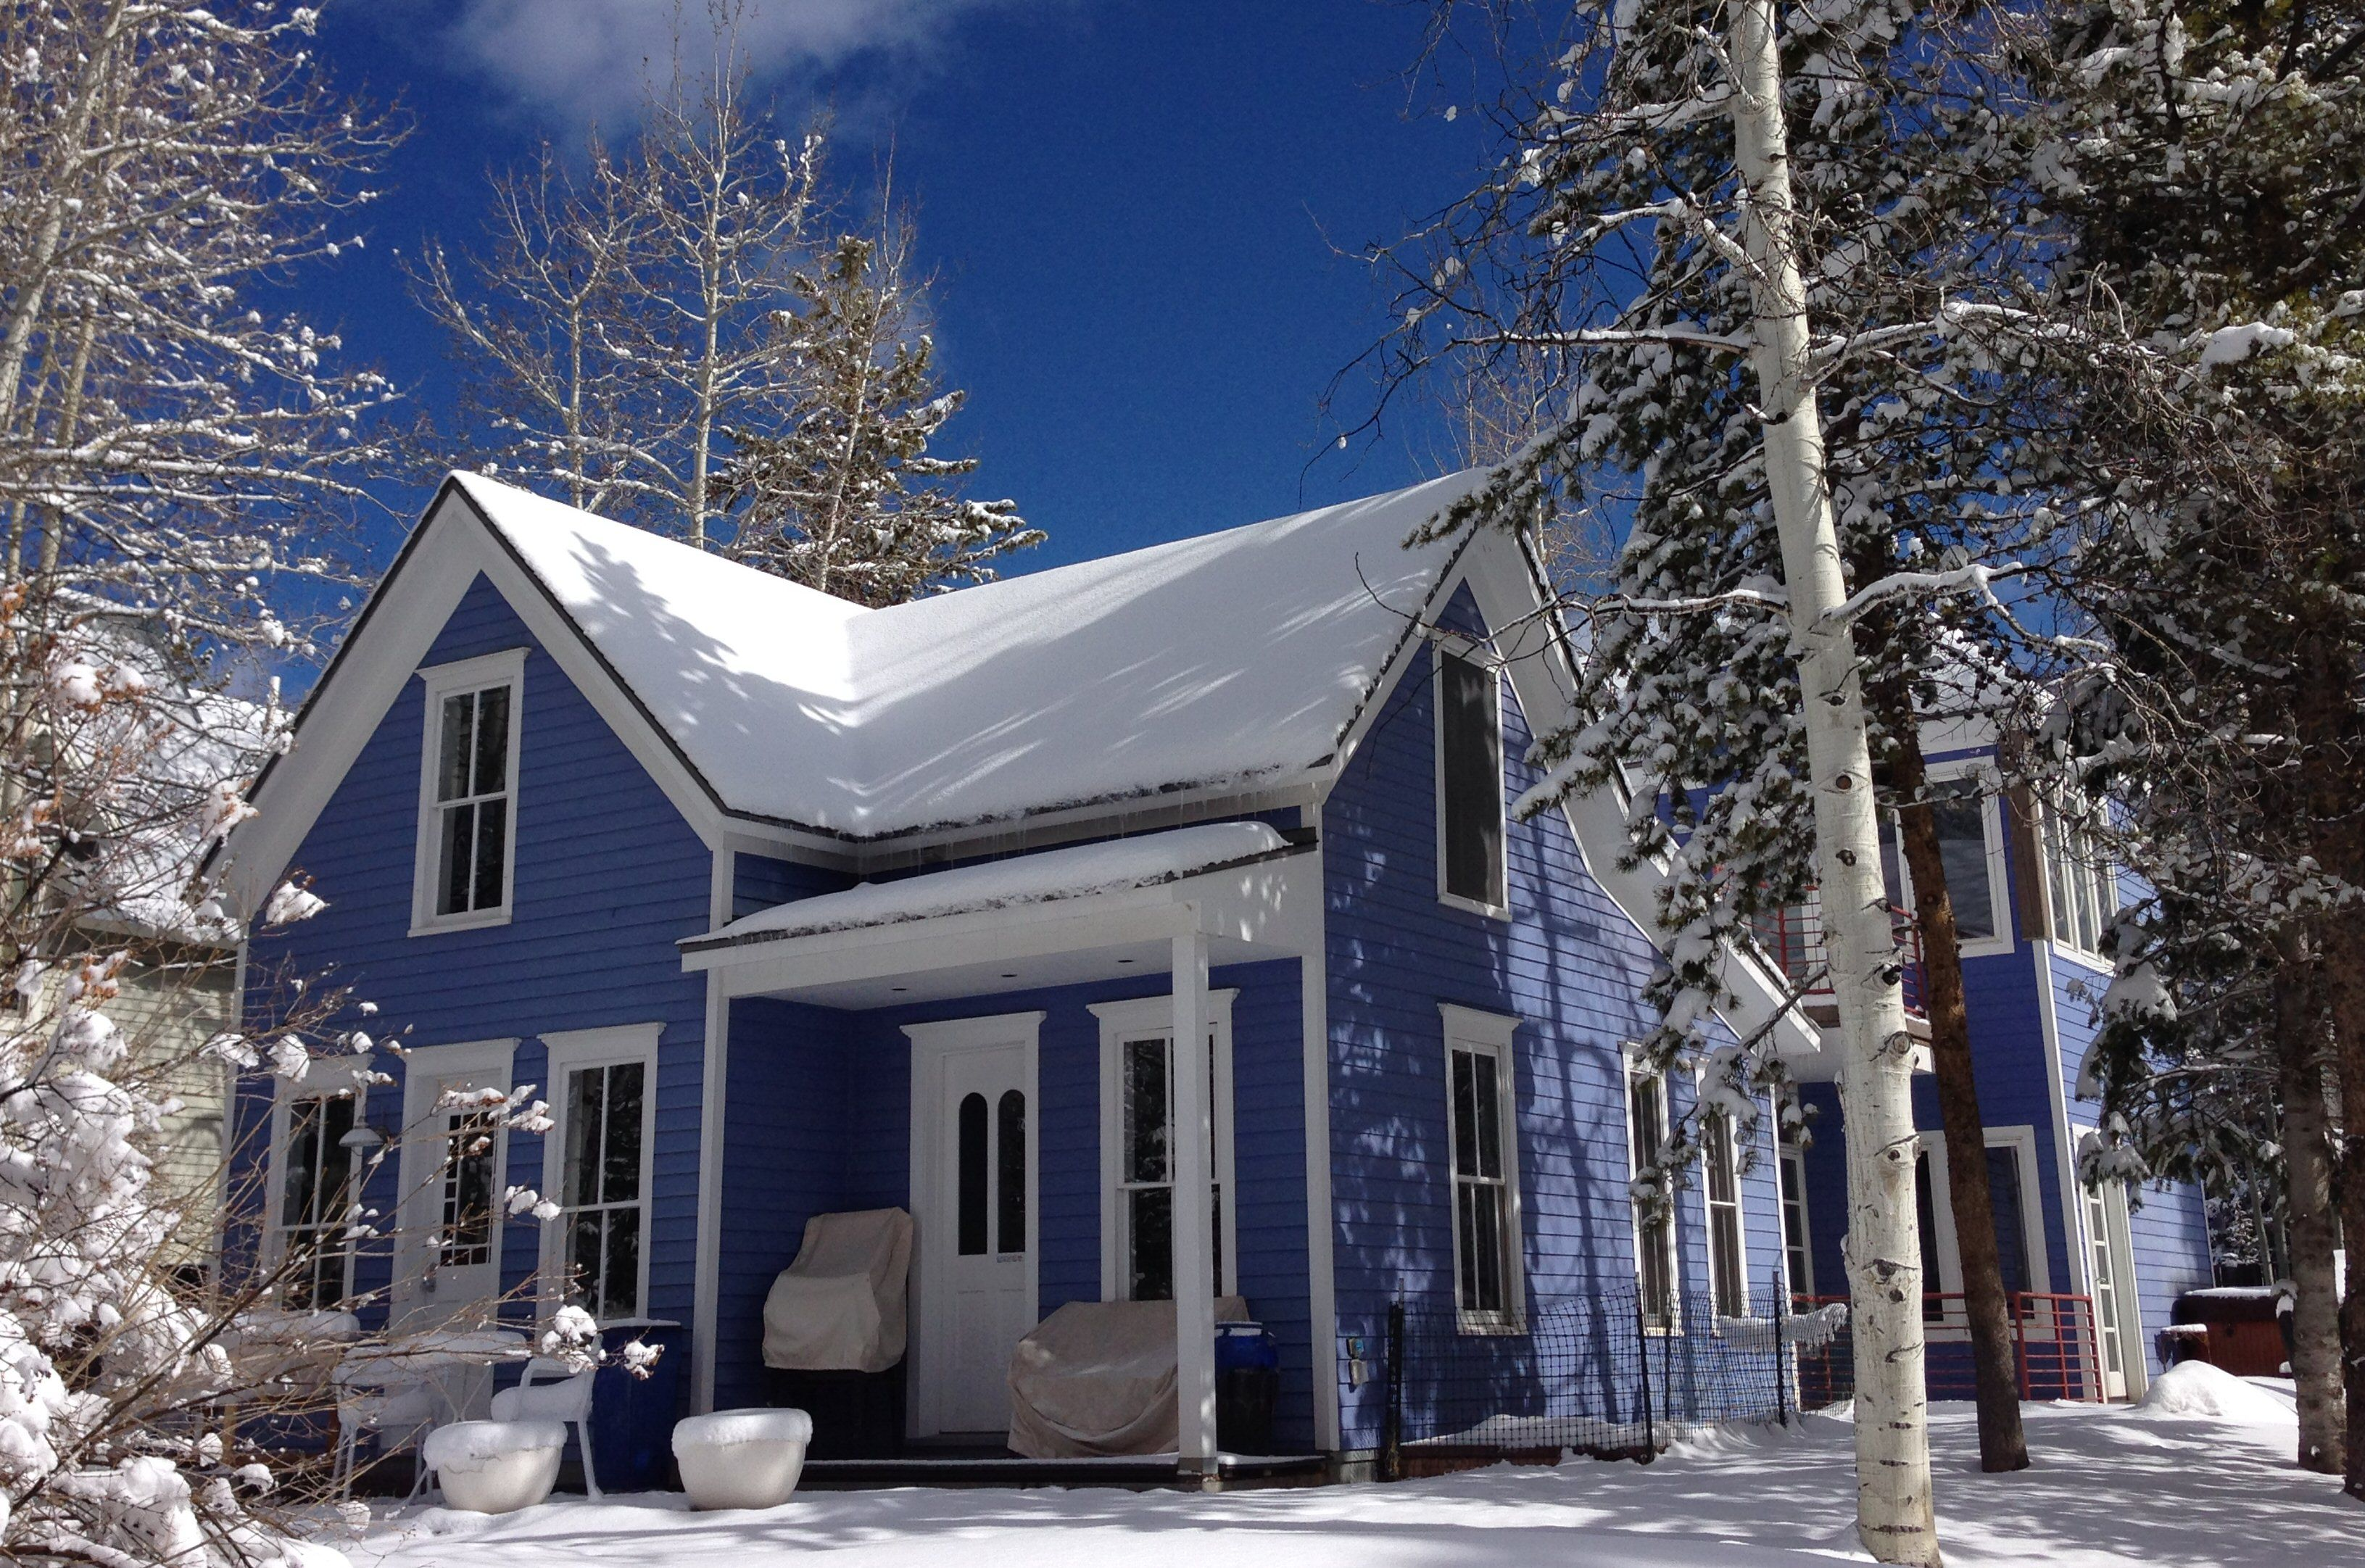 Large blue farmhouse in winter